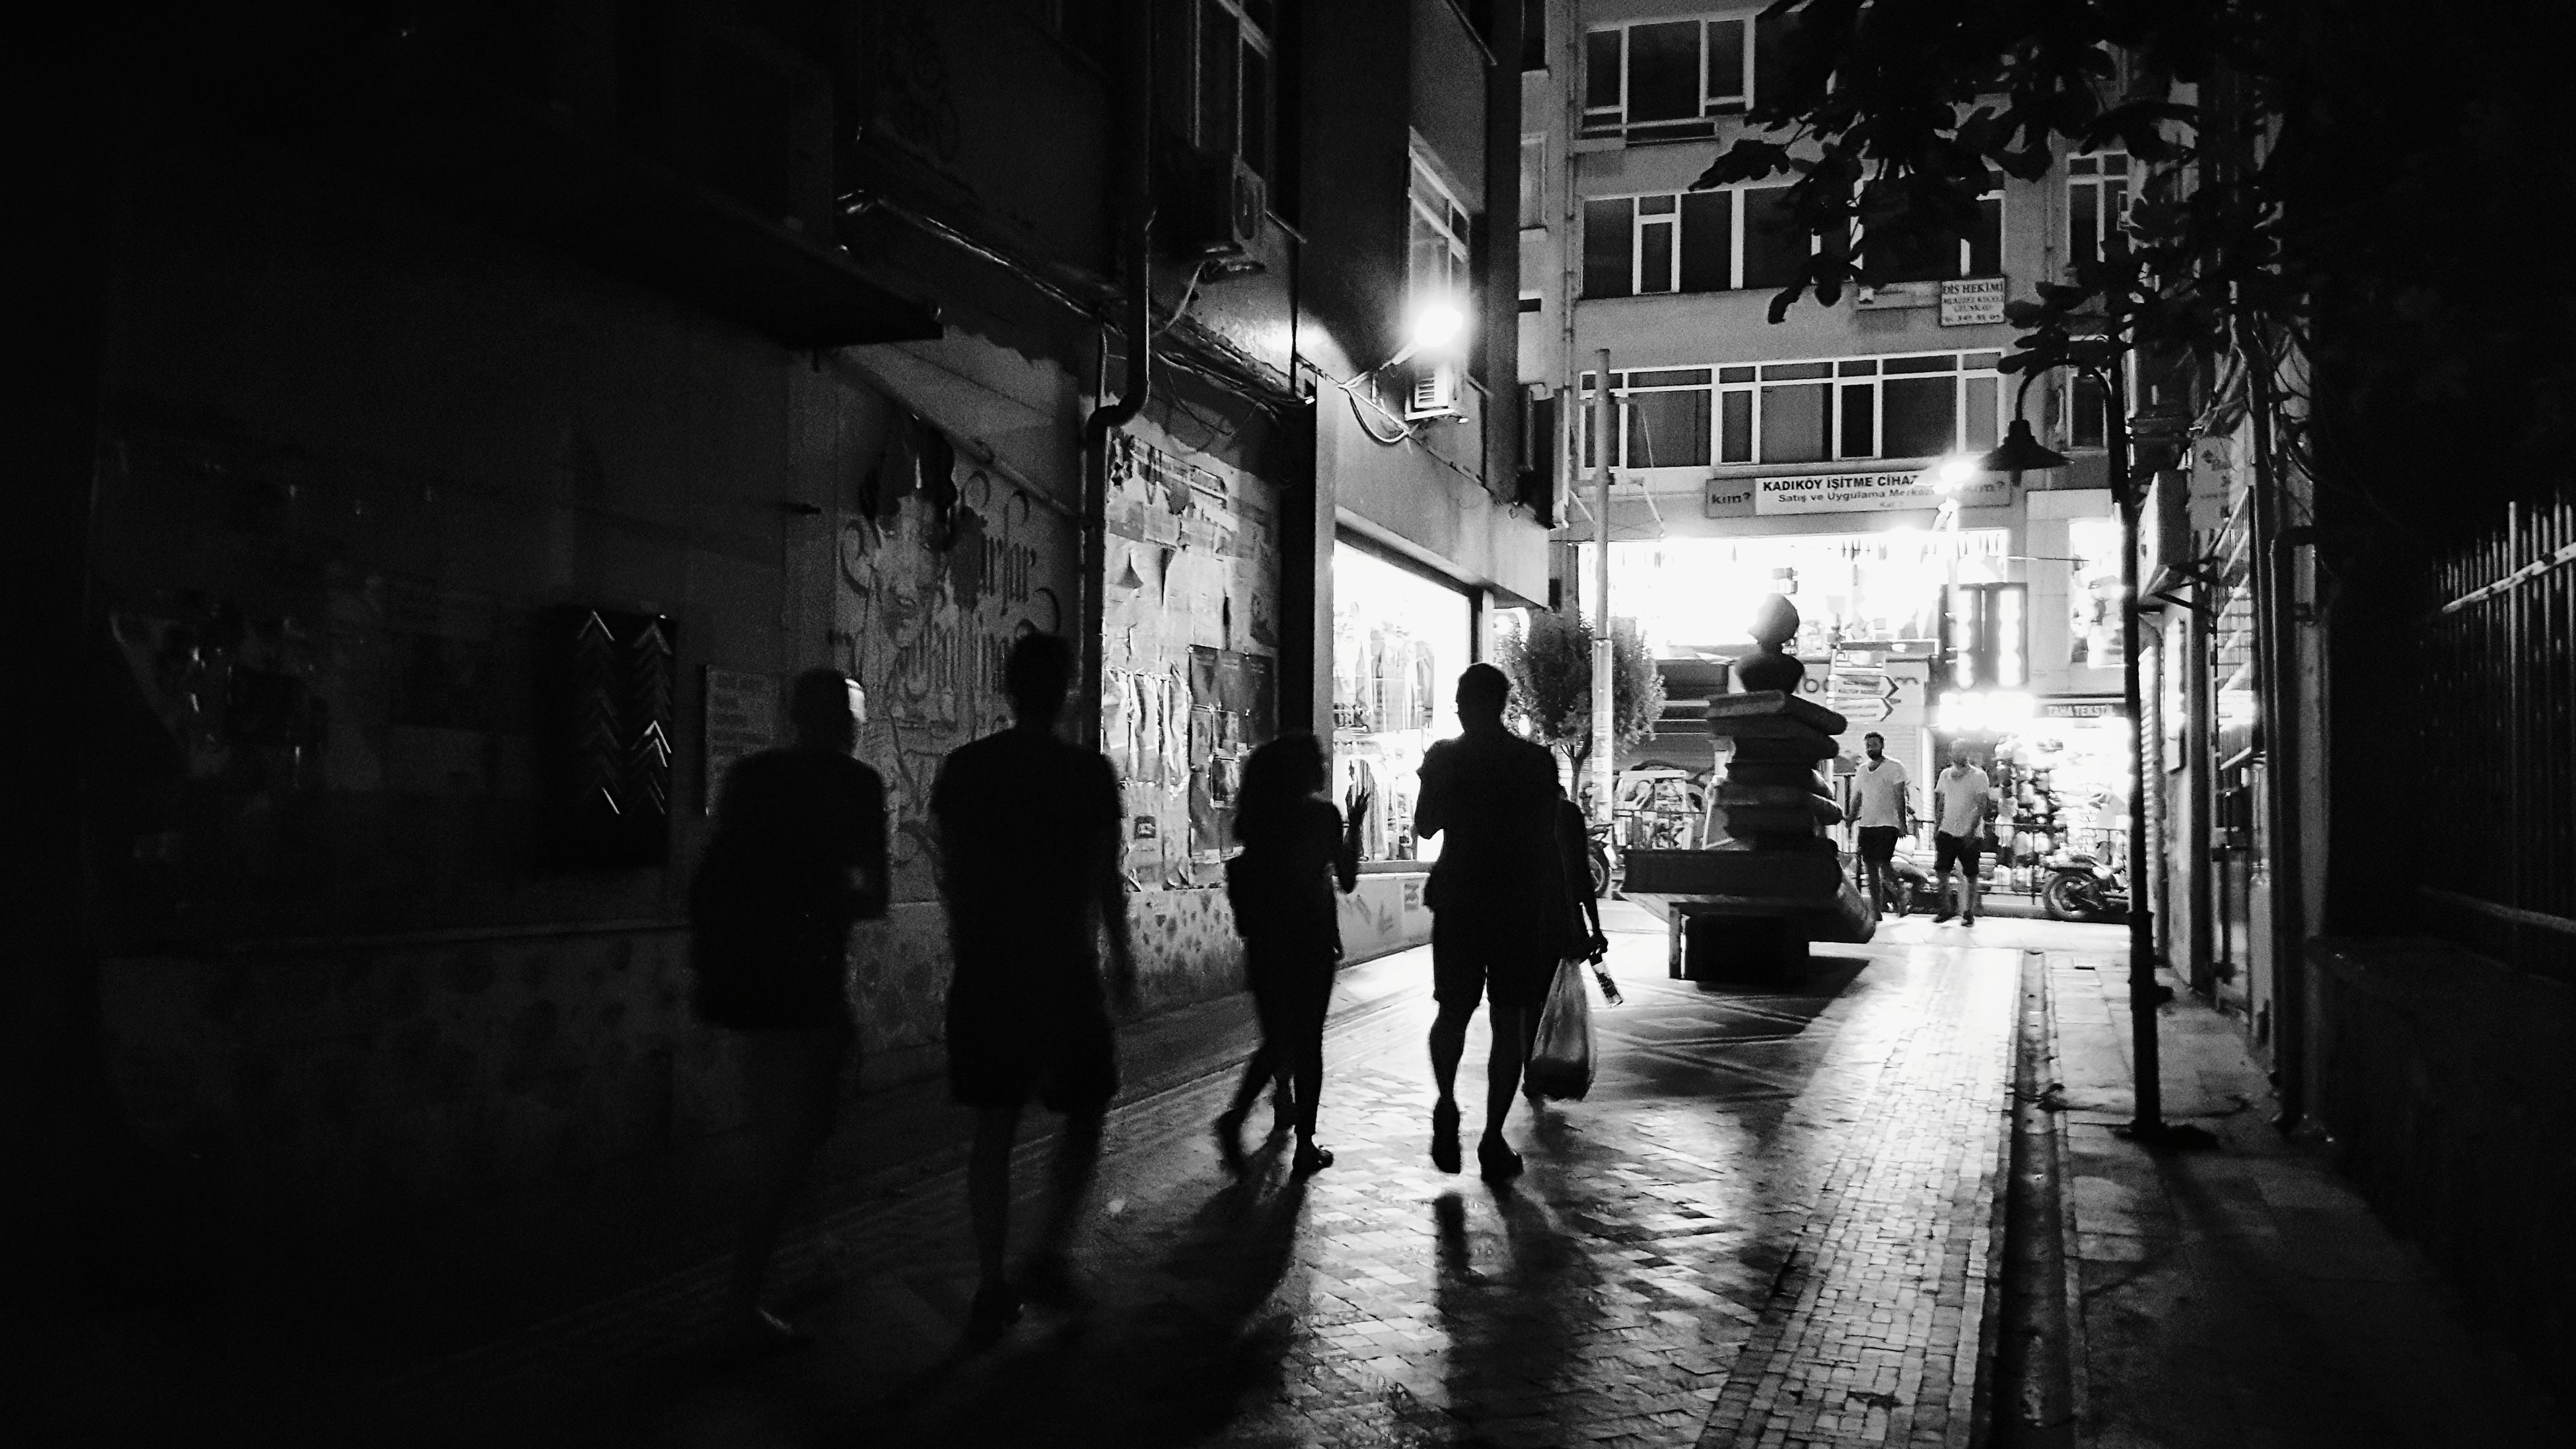 architecture, built structure, building exterior, walking, night, rear view, city, illuminated, street, city life, men, real people, women, full length, outdoors, adult, people